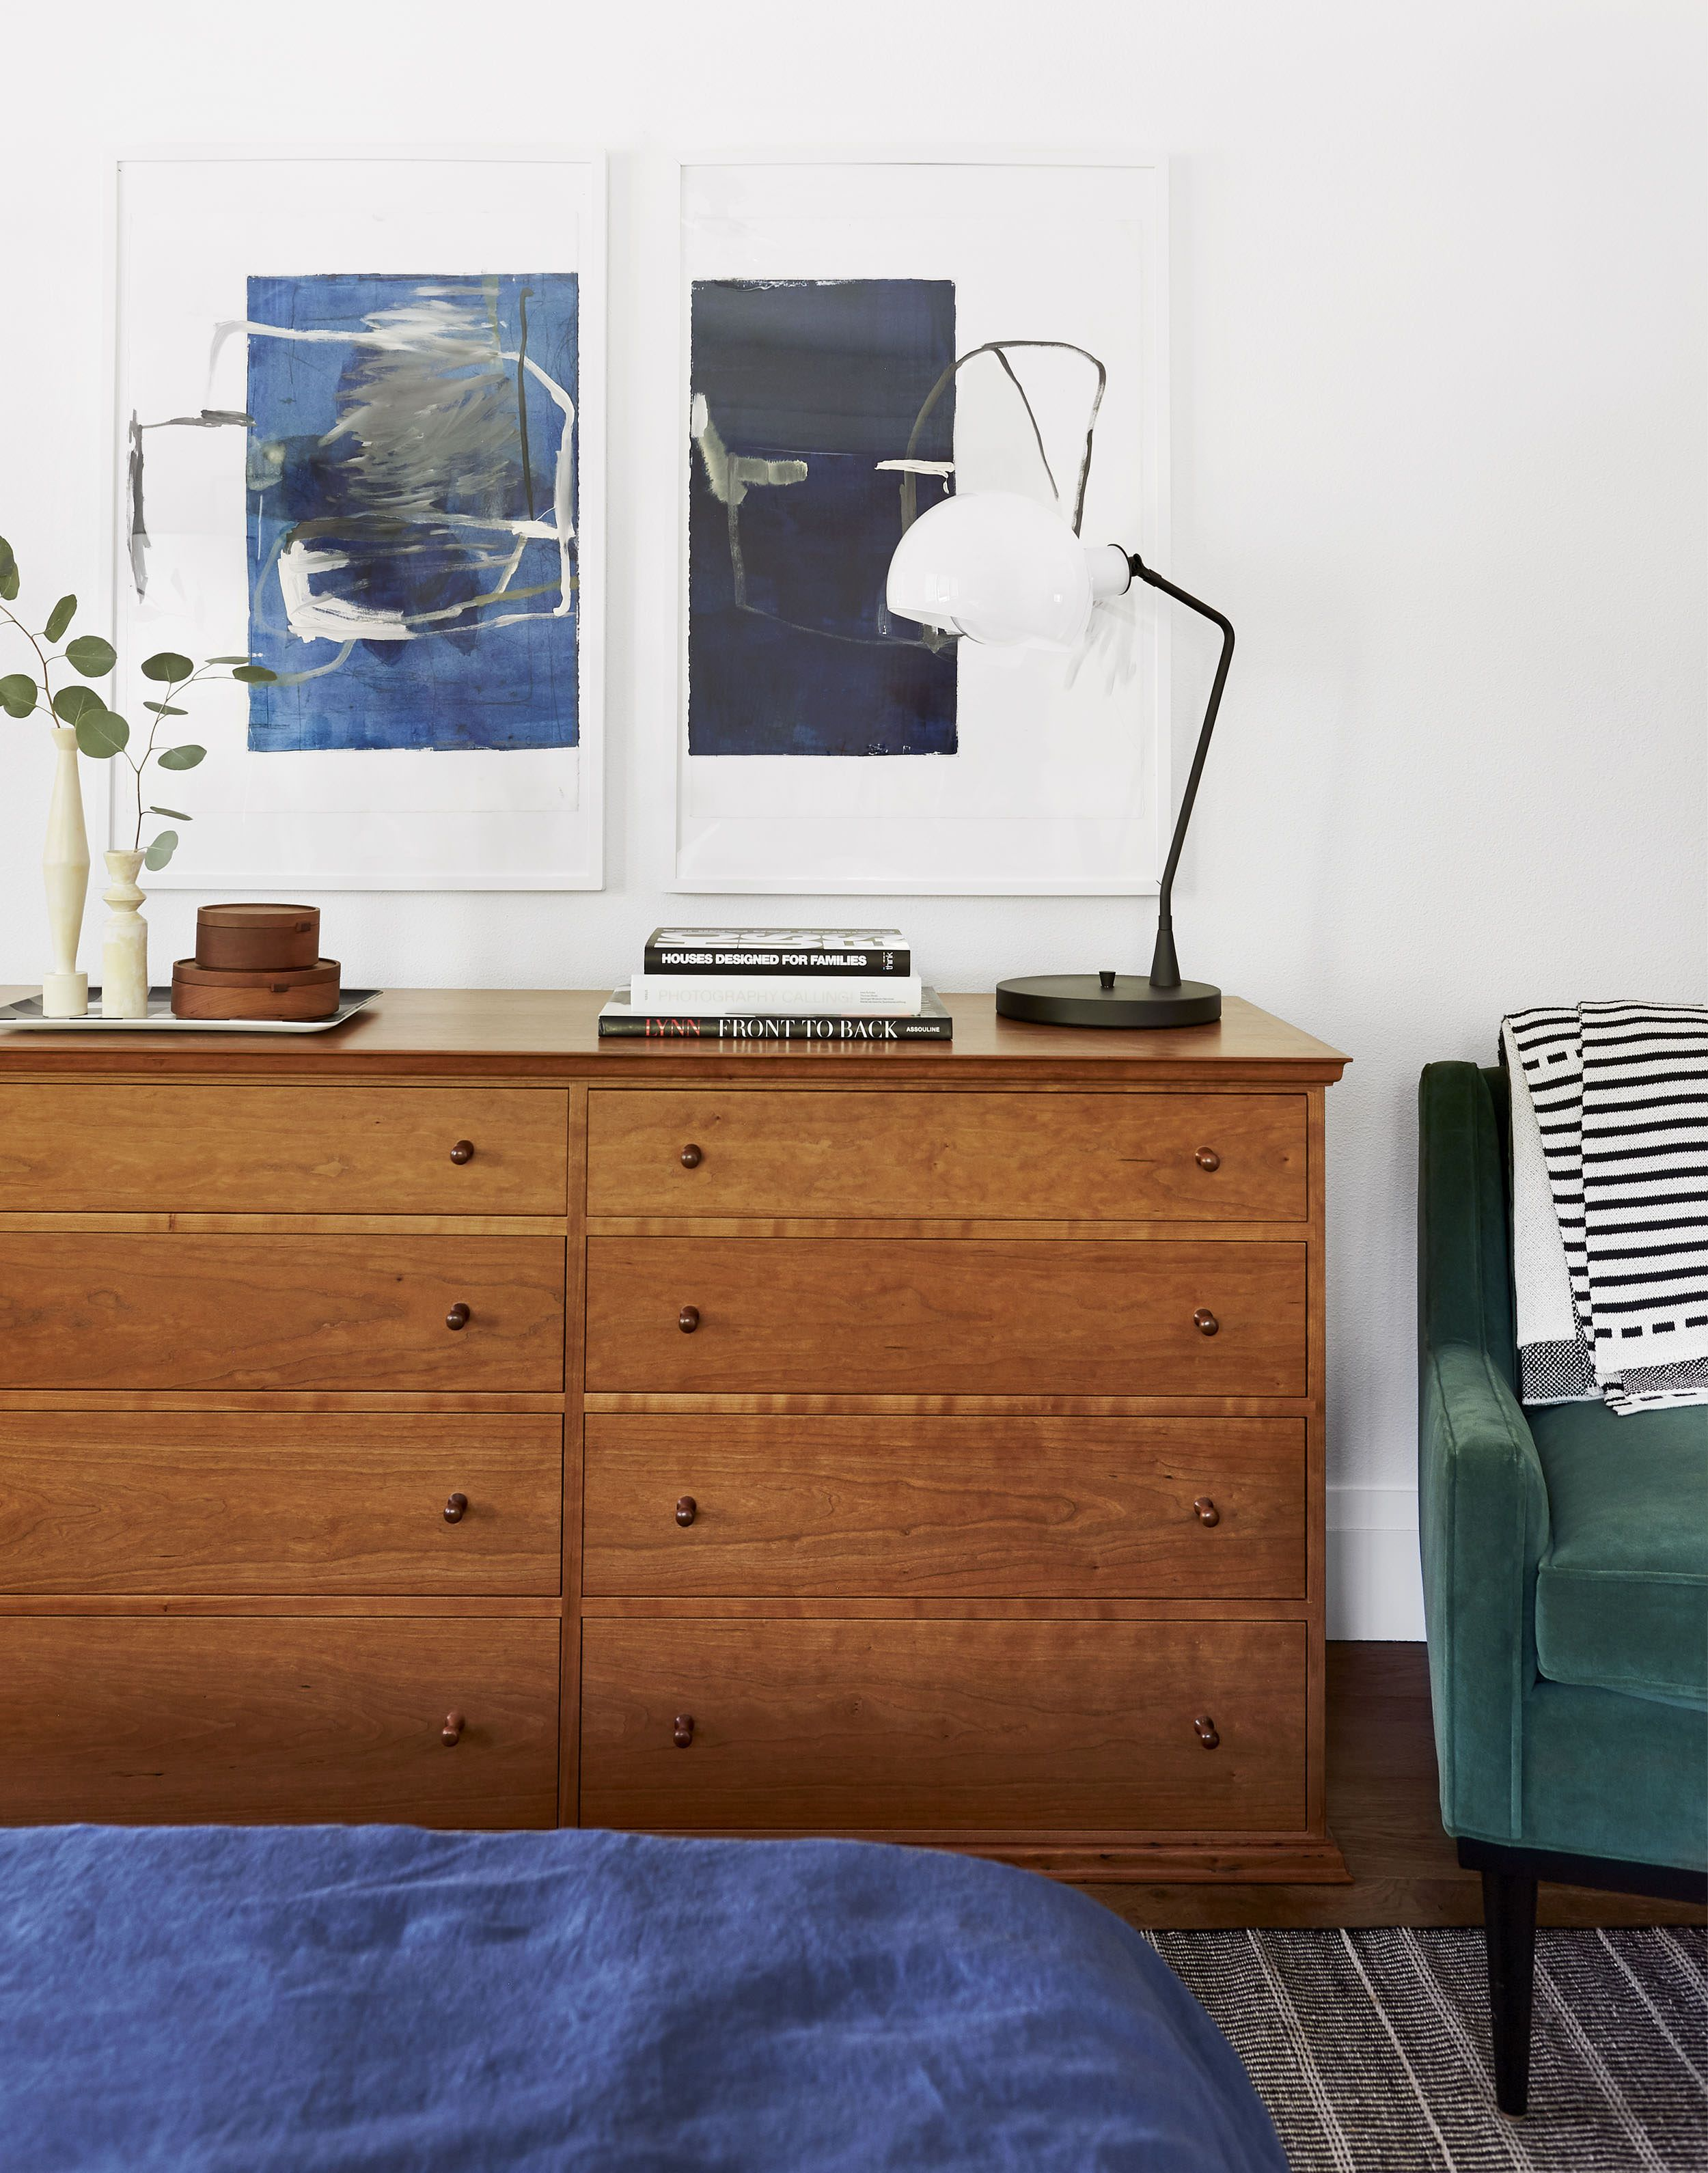 14 Rules to Follow to Design & Style the Perfect Bedroom